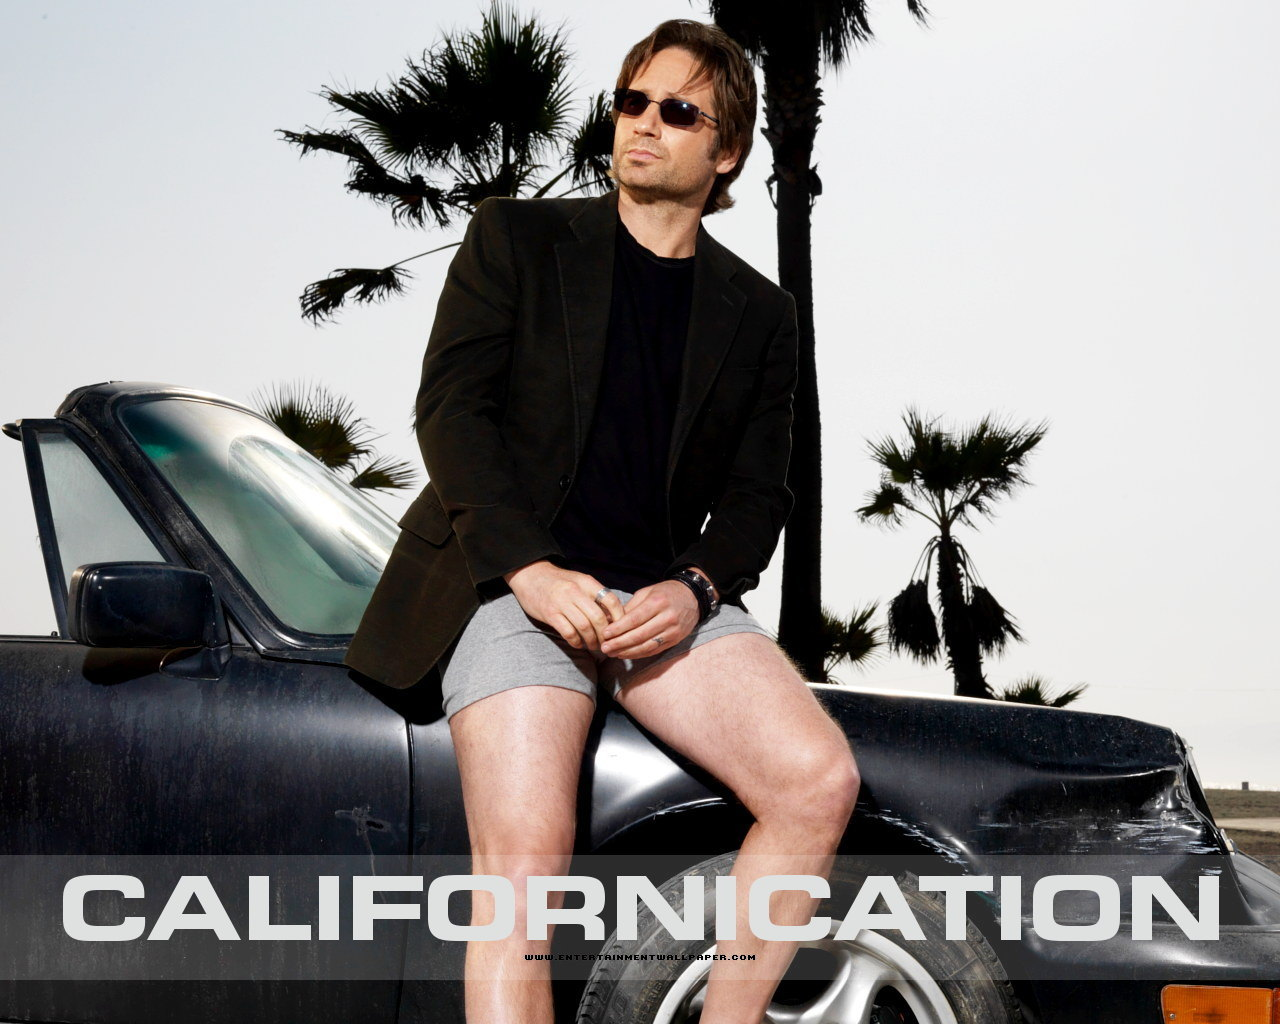 How to Appreciate Women (Hank Moody Edition)